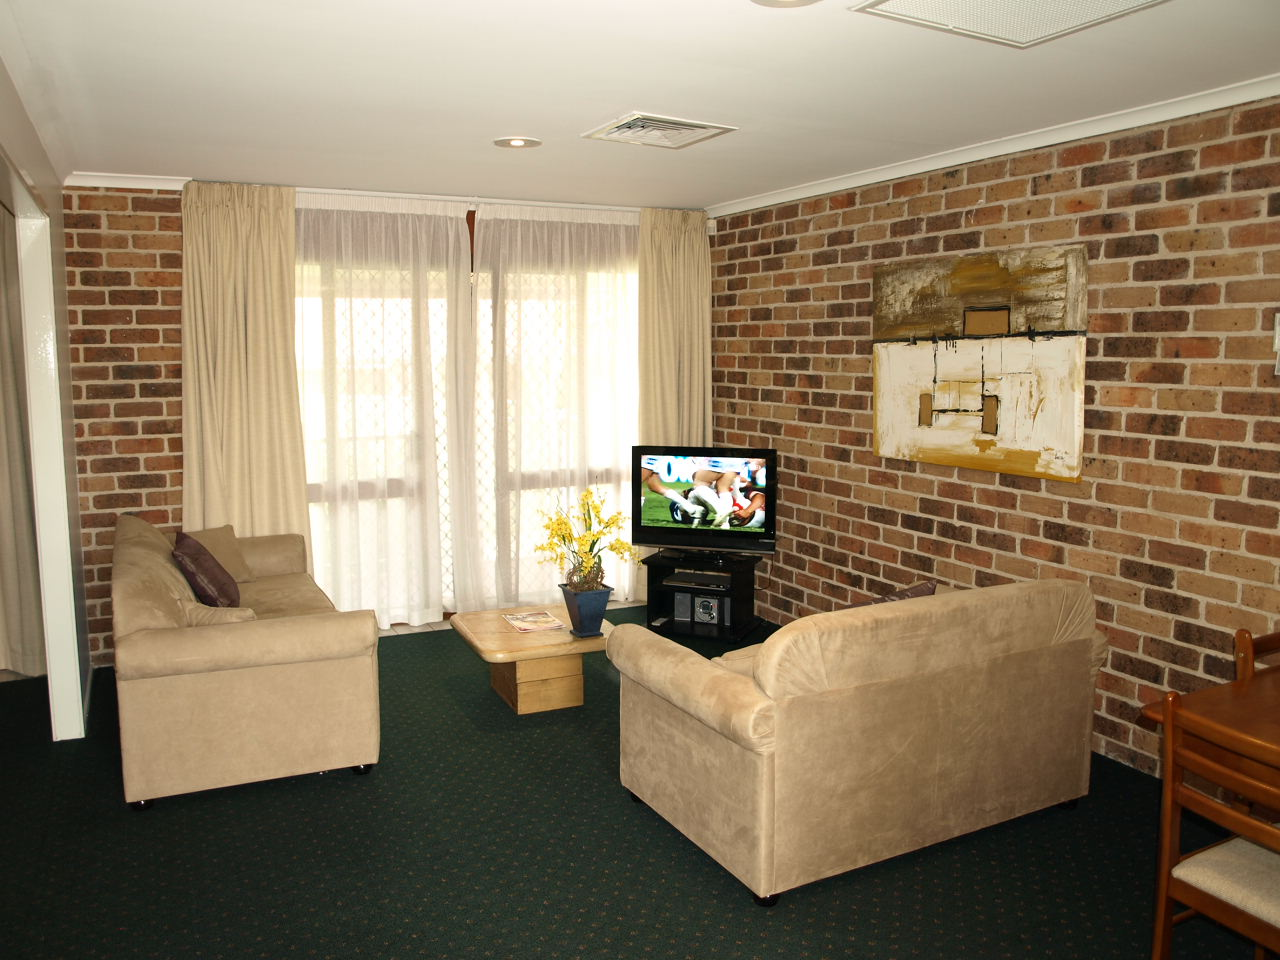 Beenleigh Yatala Motor Inn executive suite lounge